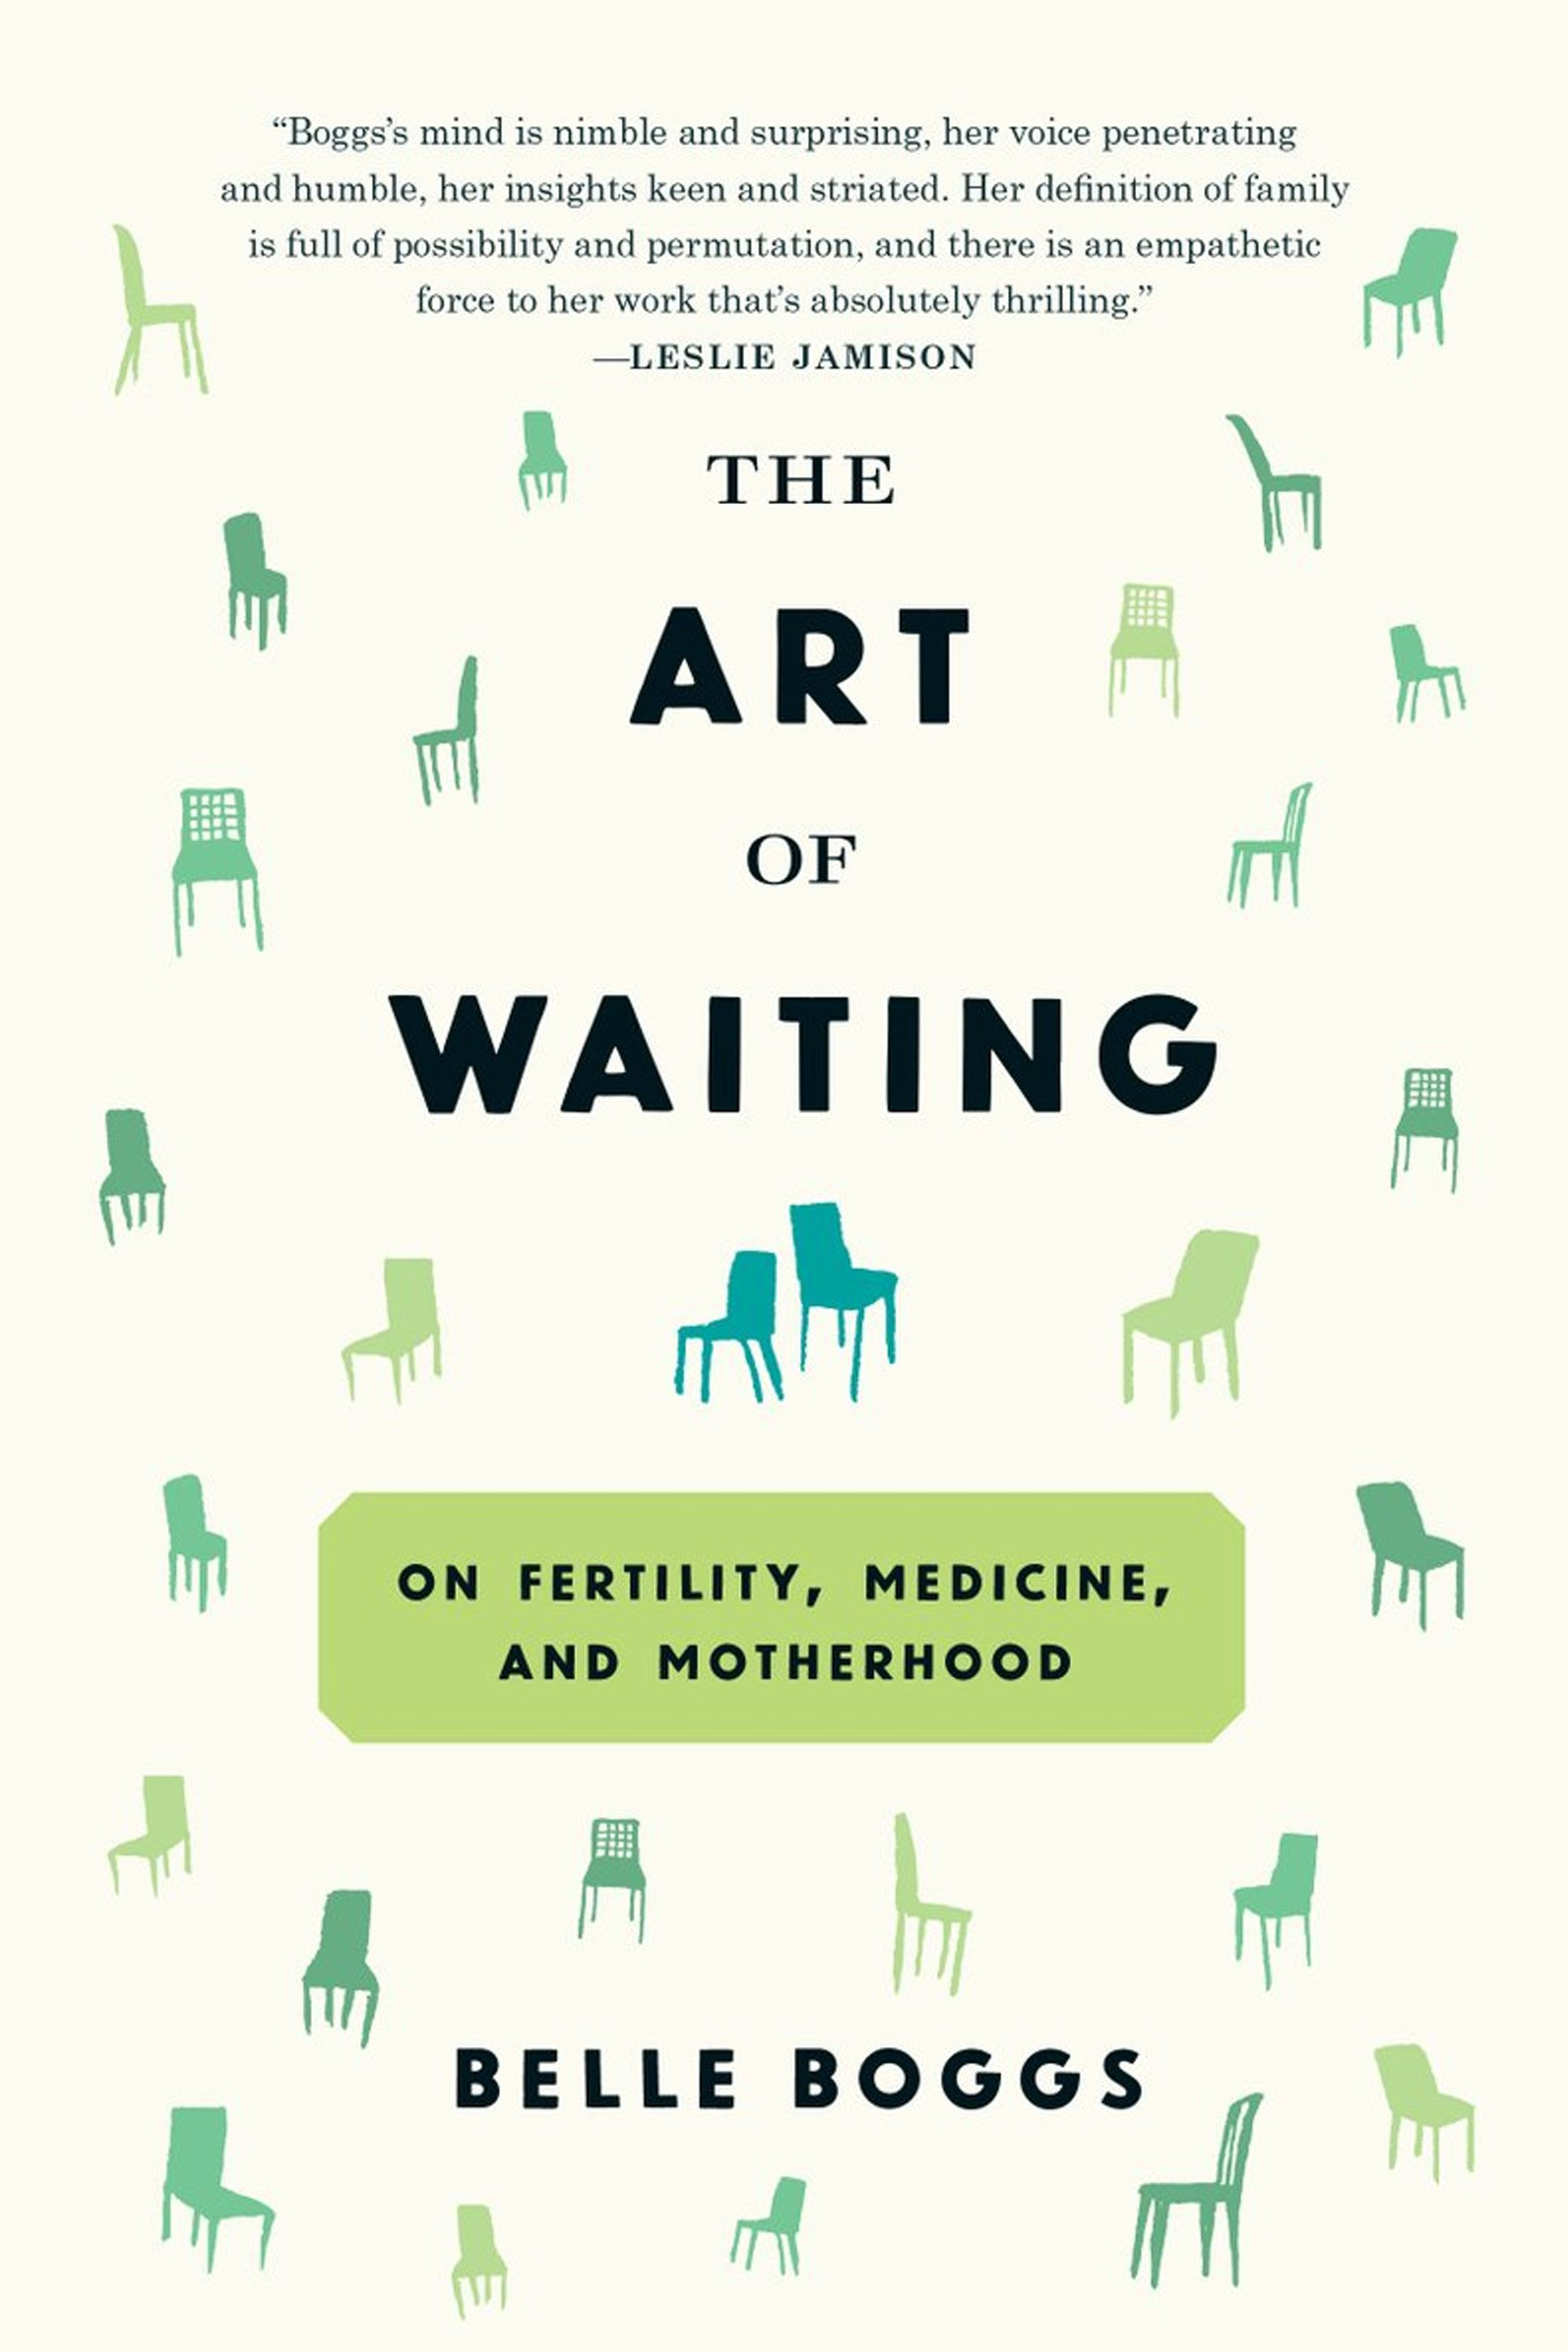 "<p>Belle Boggs' 2012 essay&nbsp&#x3B;""The Art of Waiting"" primed audiences for this intelligent, moving exploration of fertility. In the<span id=""selection-marker-1"" class=""redactor-selection-marker"" data-verified=""redactor"" data-redactor-tag=""span"" data-redactor-class=""redactor-selection-marker""></span> book, she ranges outside her own experience, turning to the animal kingdom and pop culture to survey how we respond to the possibility—and, sometimes, impossibility—of parenthood.&nbsp&#x3B;(<a href=""https://www.amazon.com/Art-Waiting-Fertility-Medicine-Motherhood/dp/1555977499"">Graywolf Press</a>, September 6)</p>"